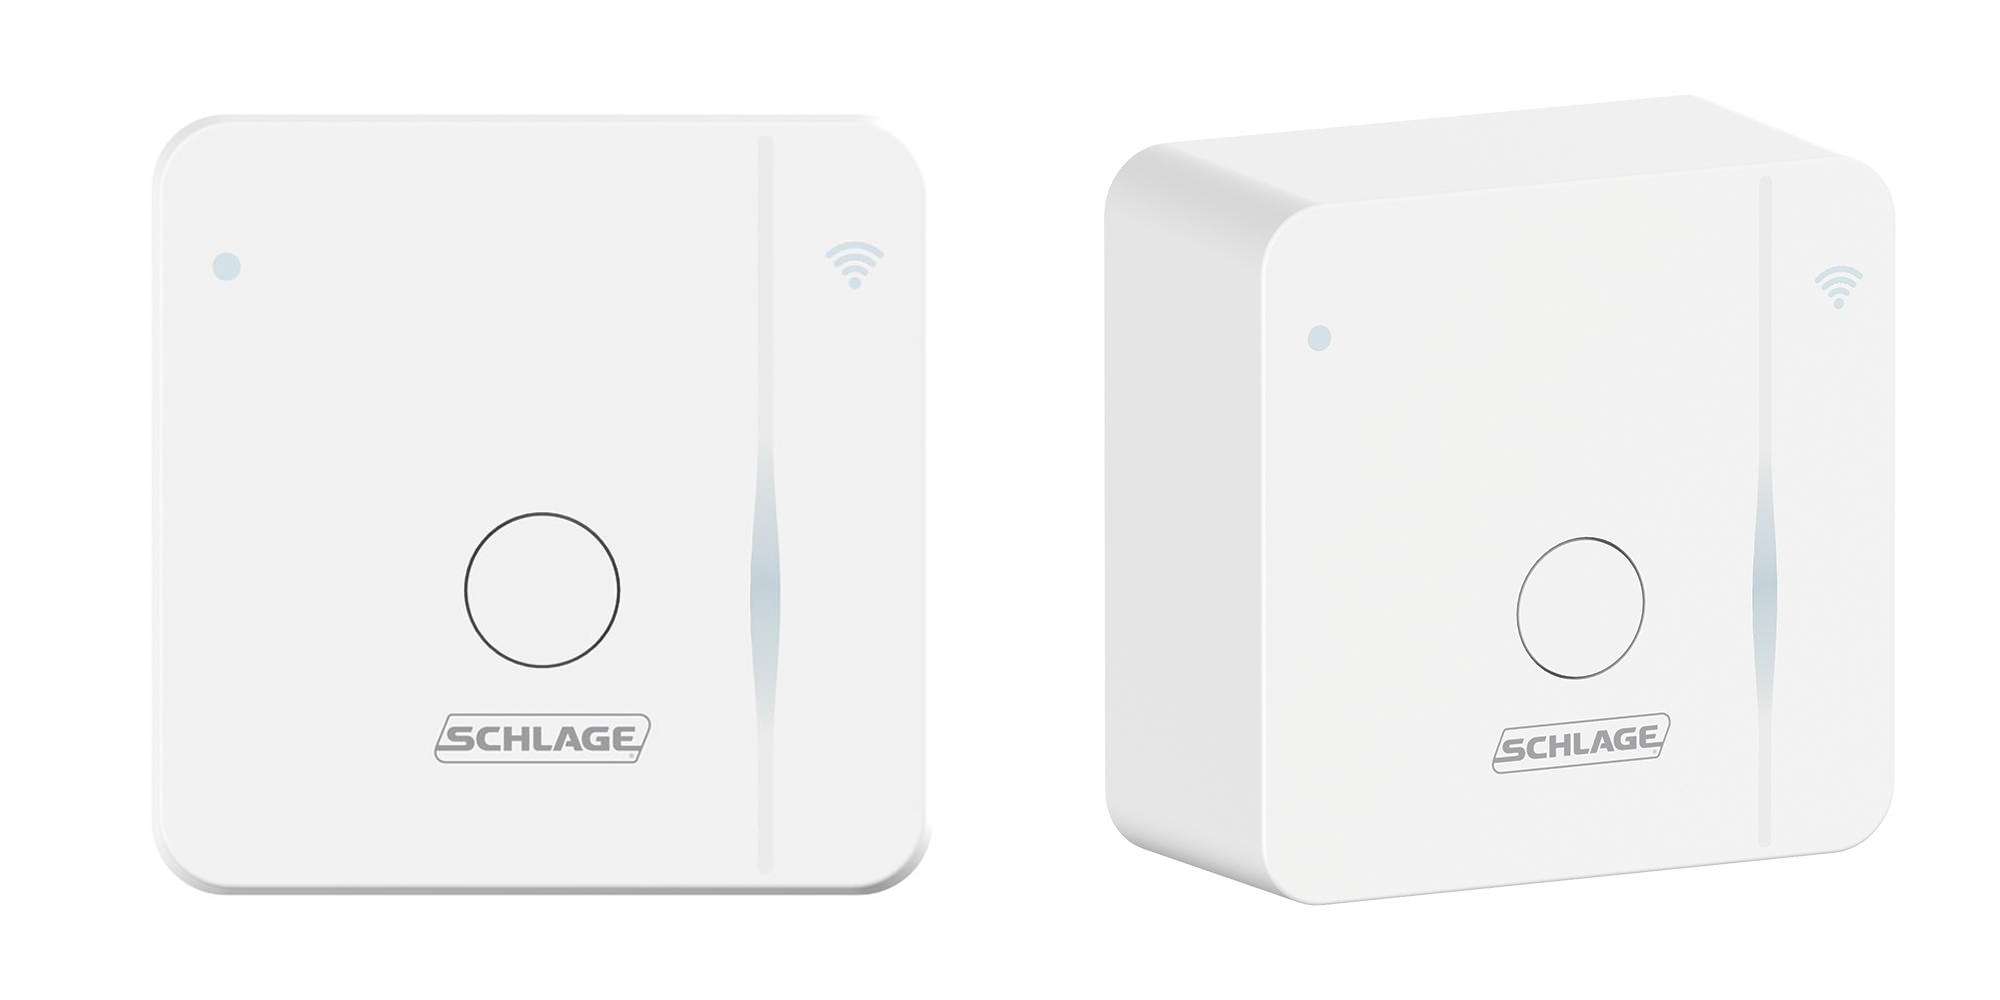 Bring Wi Fi To Your Schlage Sense Smart Deadbolt With This